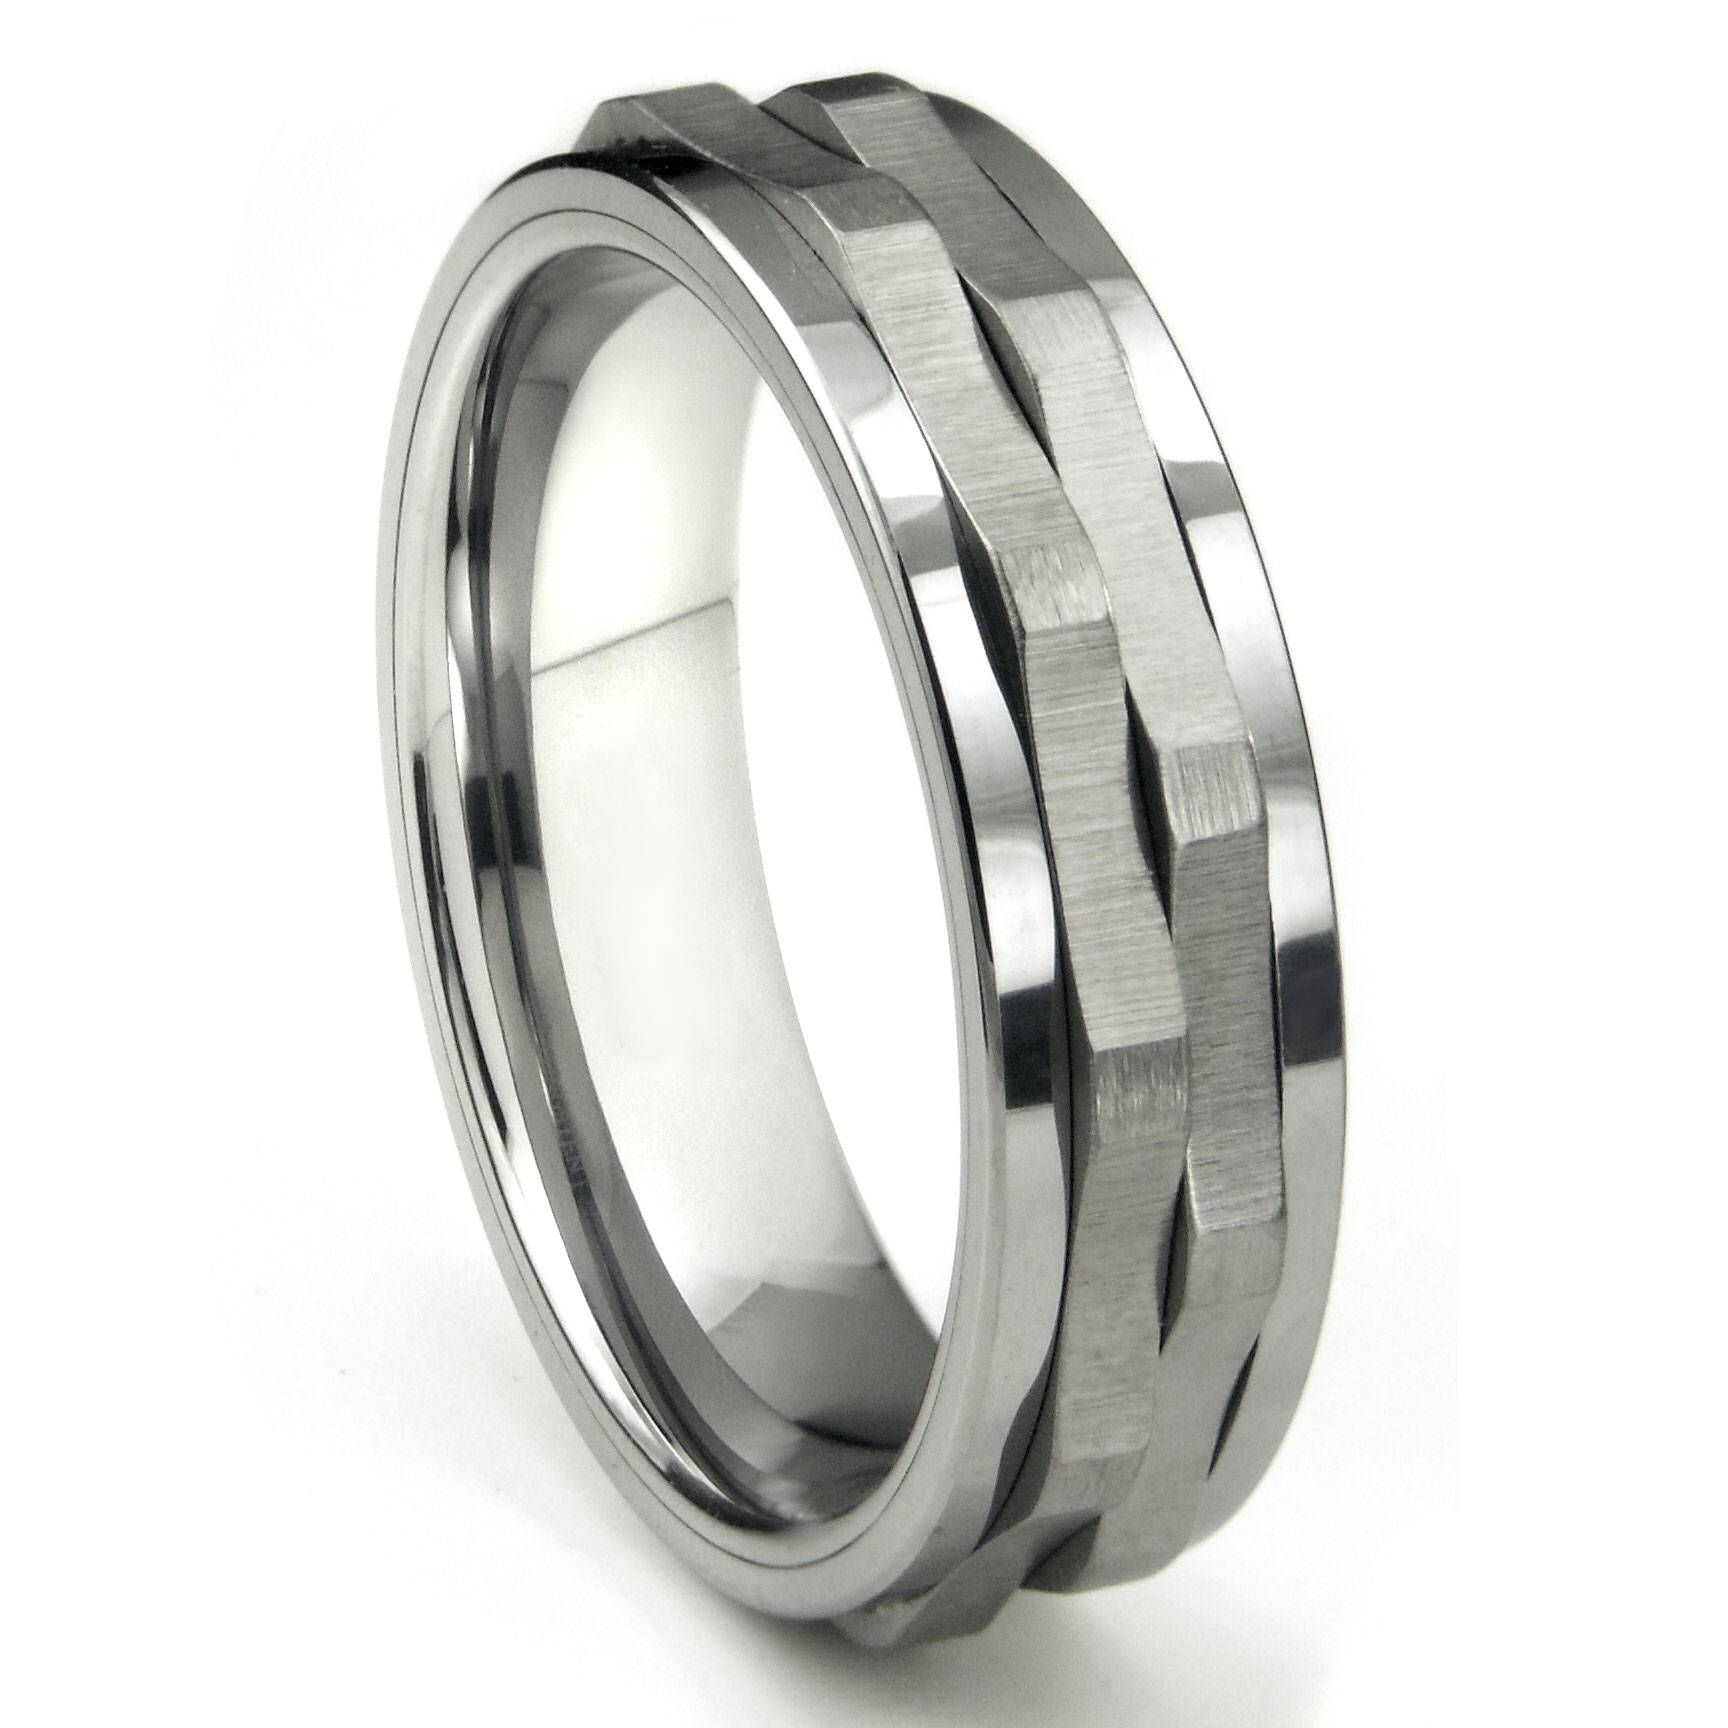 Ninja Star Tungsten Carbide Spinning Wedding Band Ring Within Tungsten Wedding Bands (Gallery 267 of 339)